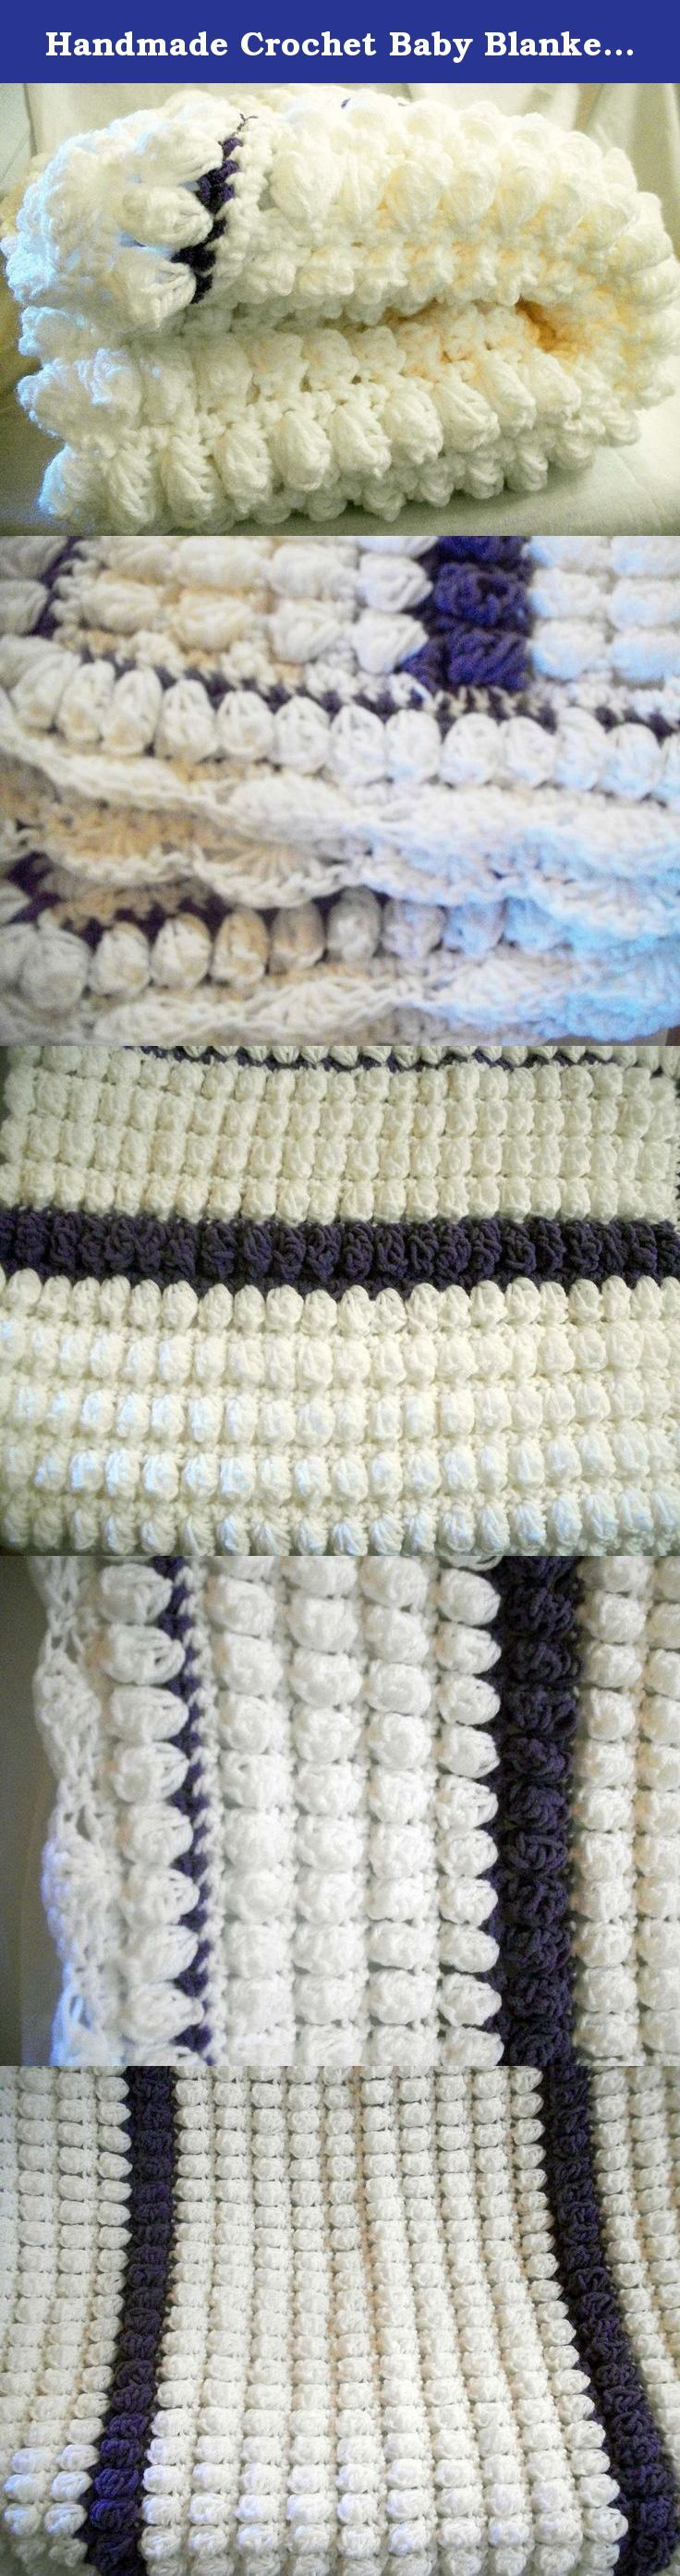 """Handmade Crochet Baby Blanket in White and Purple Popcorn Stitch by DRCrafts. This cute little baby blanket is perfect for bringing baby home from the hospital, to give as a baby shower gift, or even to cover baby in the stroller or car seat. Made with the popcorn stitch, it is thick and warm, made in white with purple. Machine wash and dry, no bleach. Use warm, gentle settings. Do not dry clean. It measures approx. 36"""" wide and 27"""" high."""